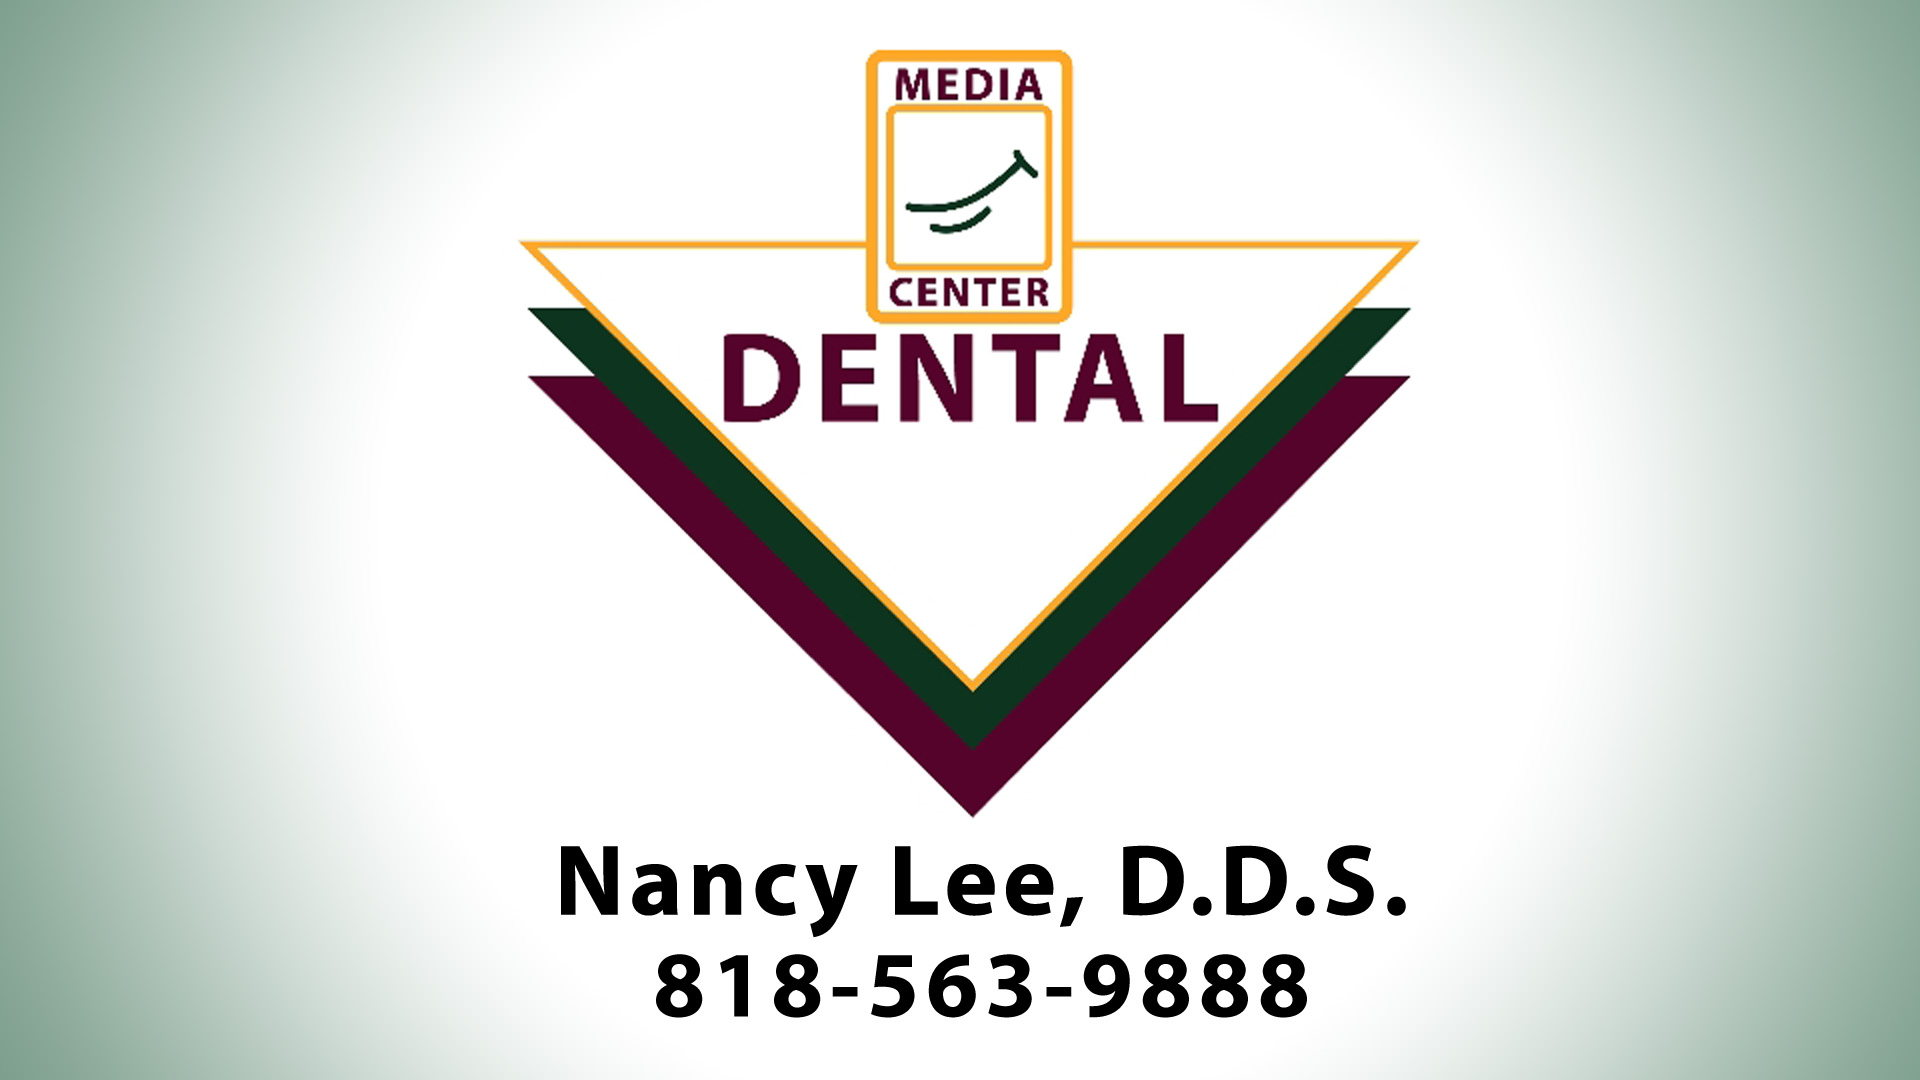 Media Center Dental - Nancy Lee, D.D.S